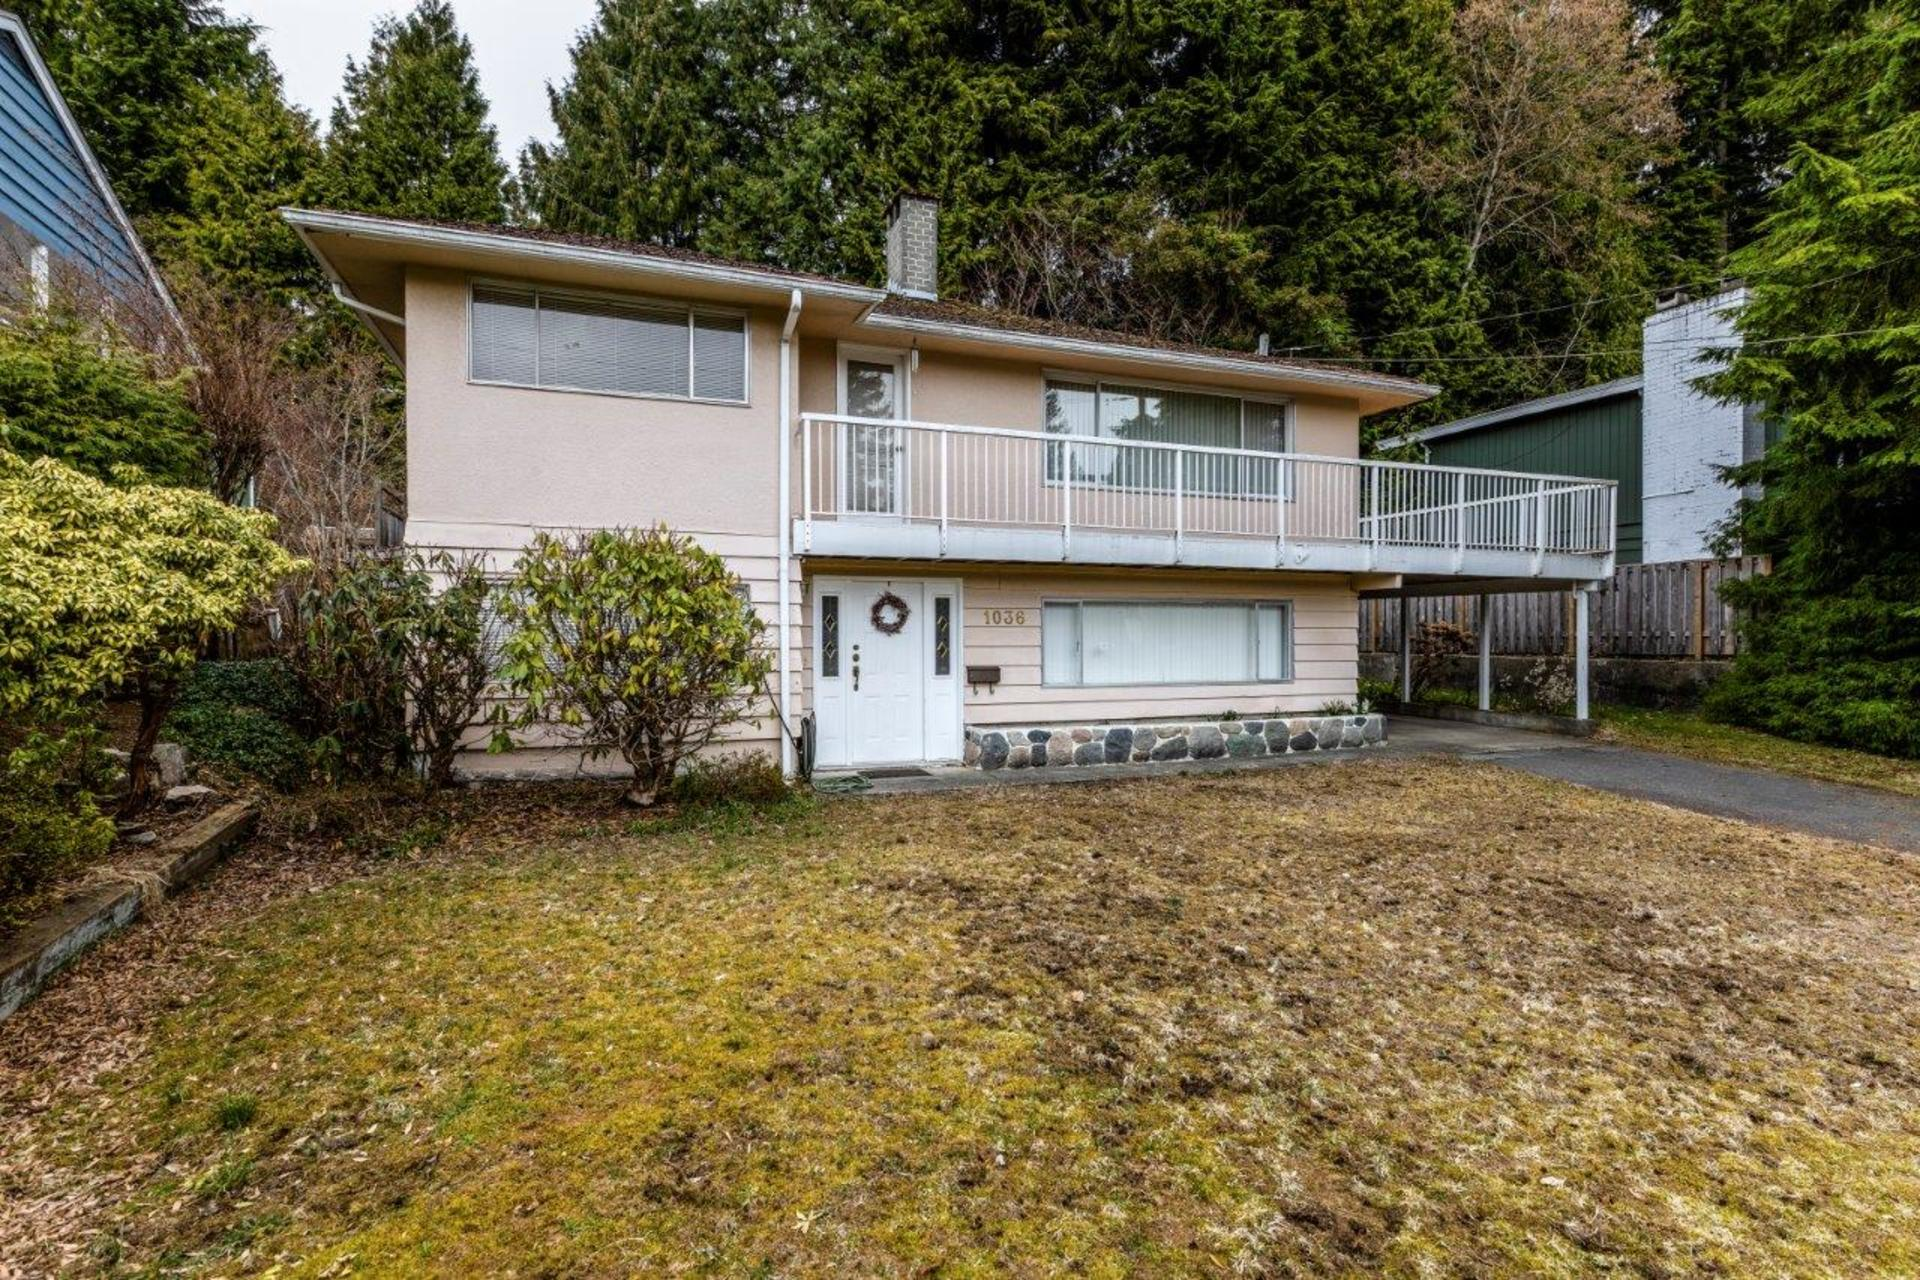 1036 Clements, Canyon Heights NV, North Vancouver